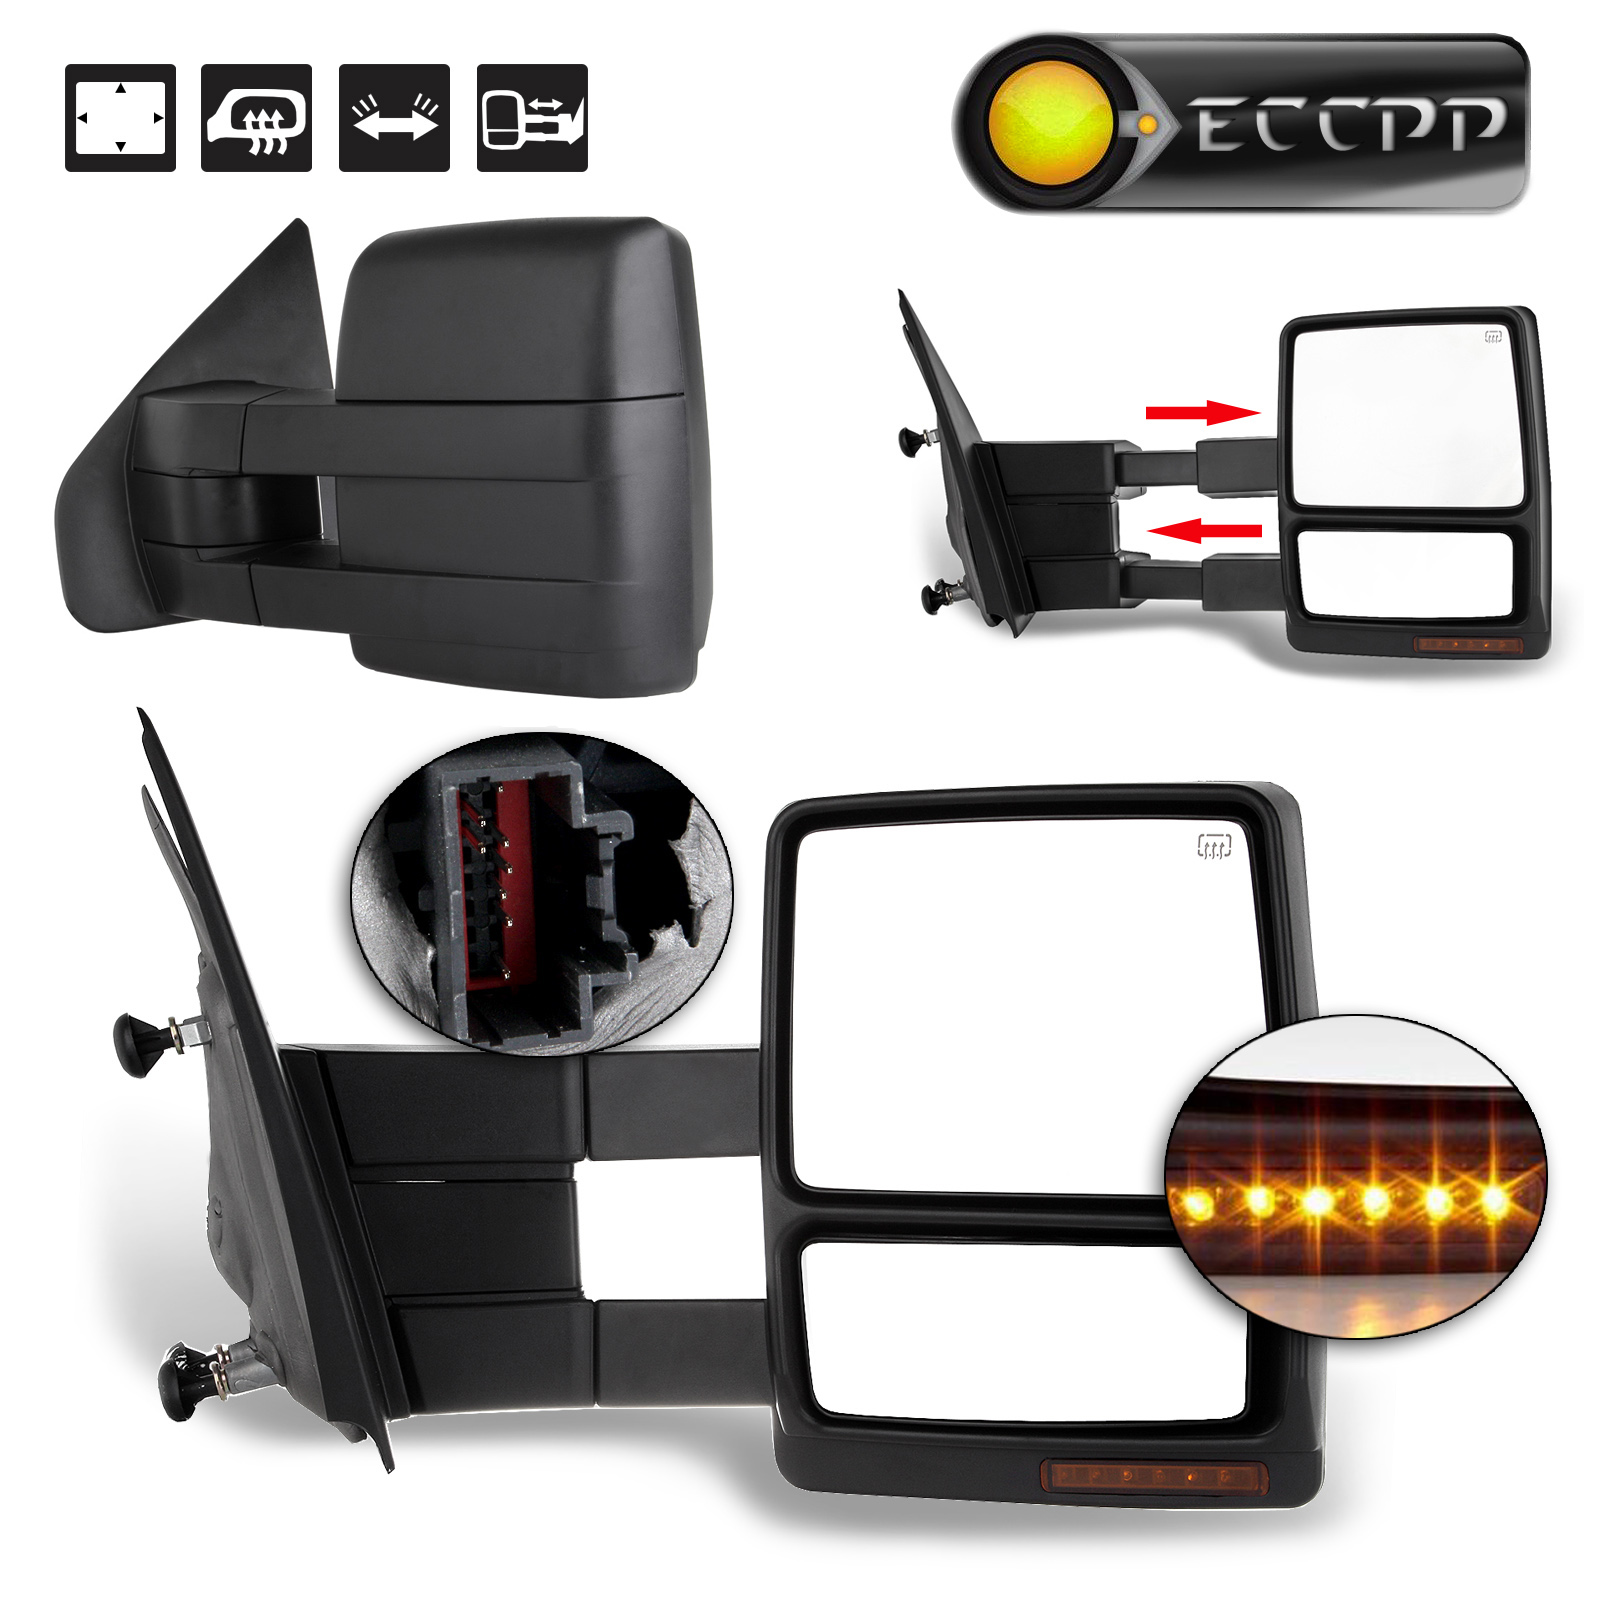 Eccpp power heated towing mirror for 2004 2005 2006 ford f150 truck turn signal puddle light